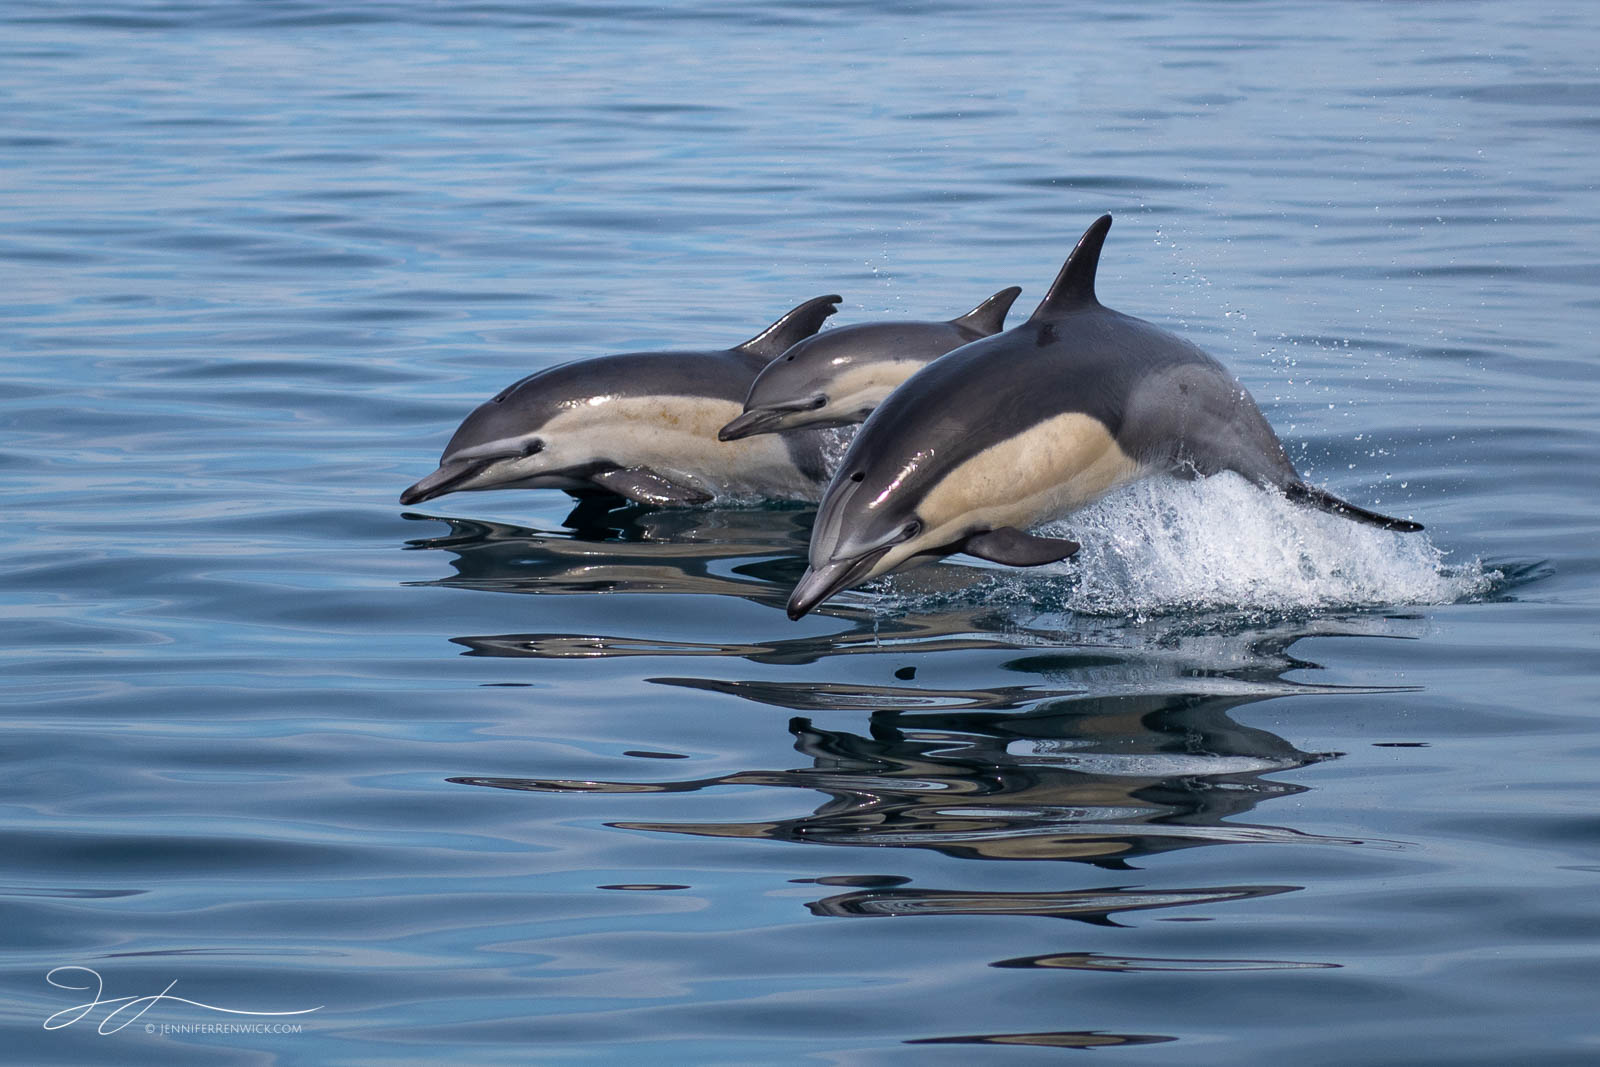 Two adult common dolphins surface with a calf in between.